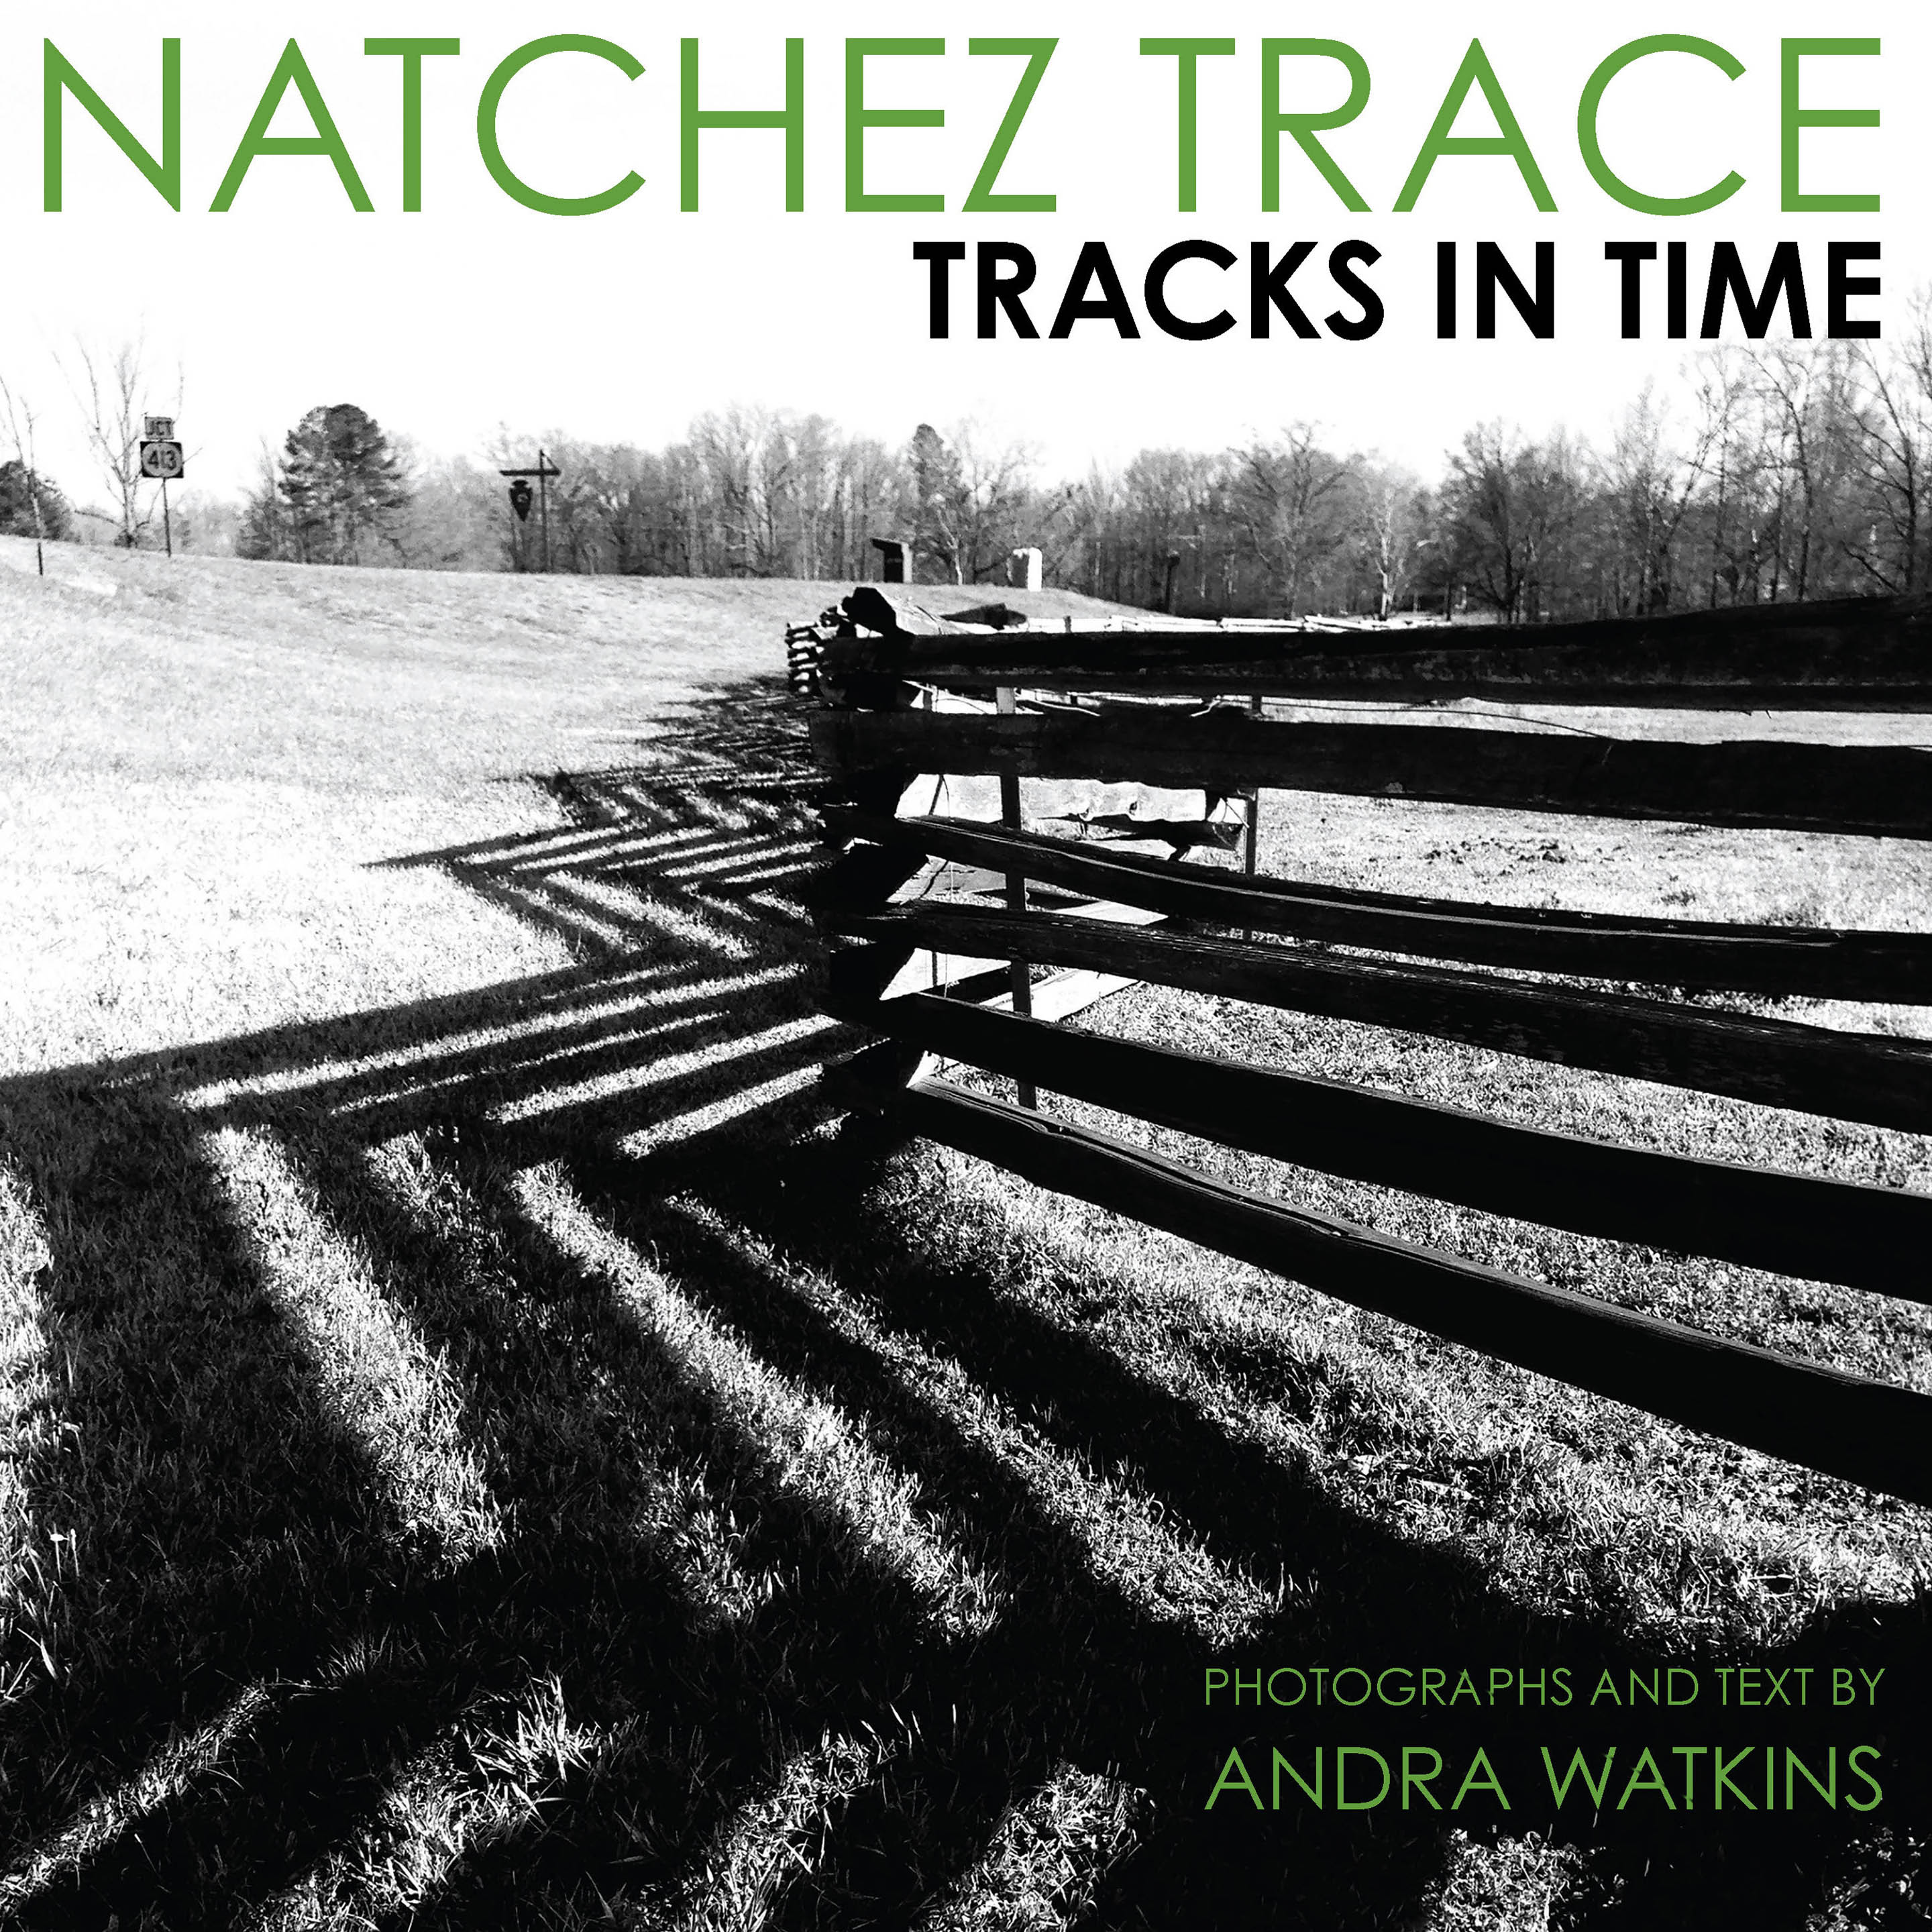 natchez trace tracks in time